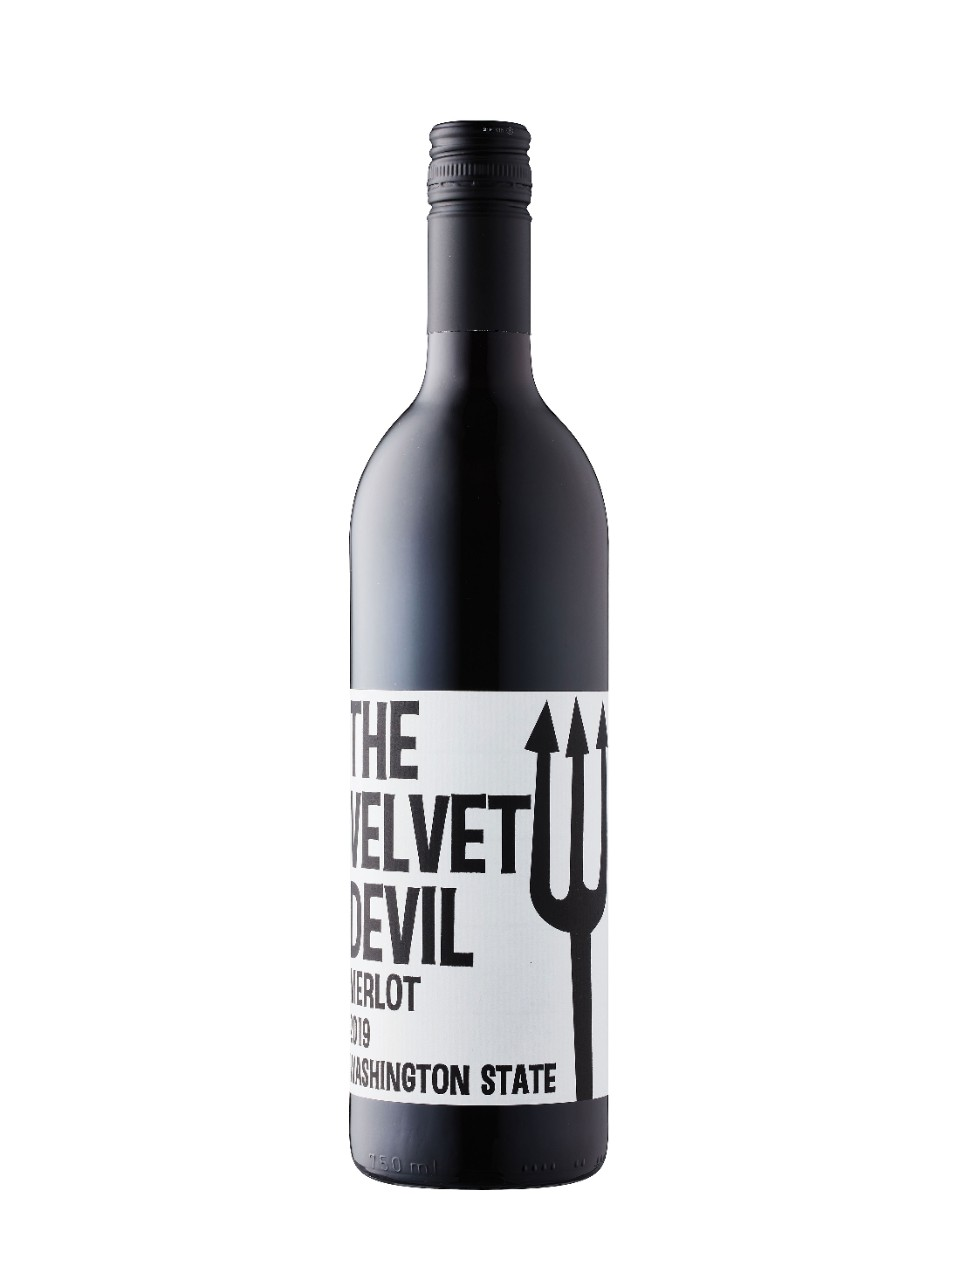 The Velvet Devil Merlot from LCBO